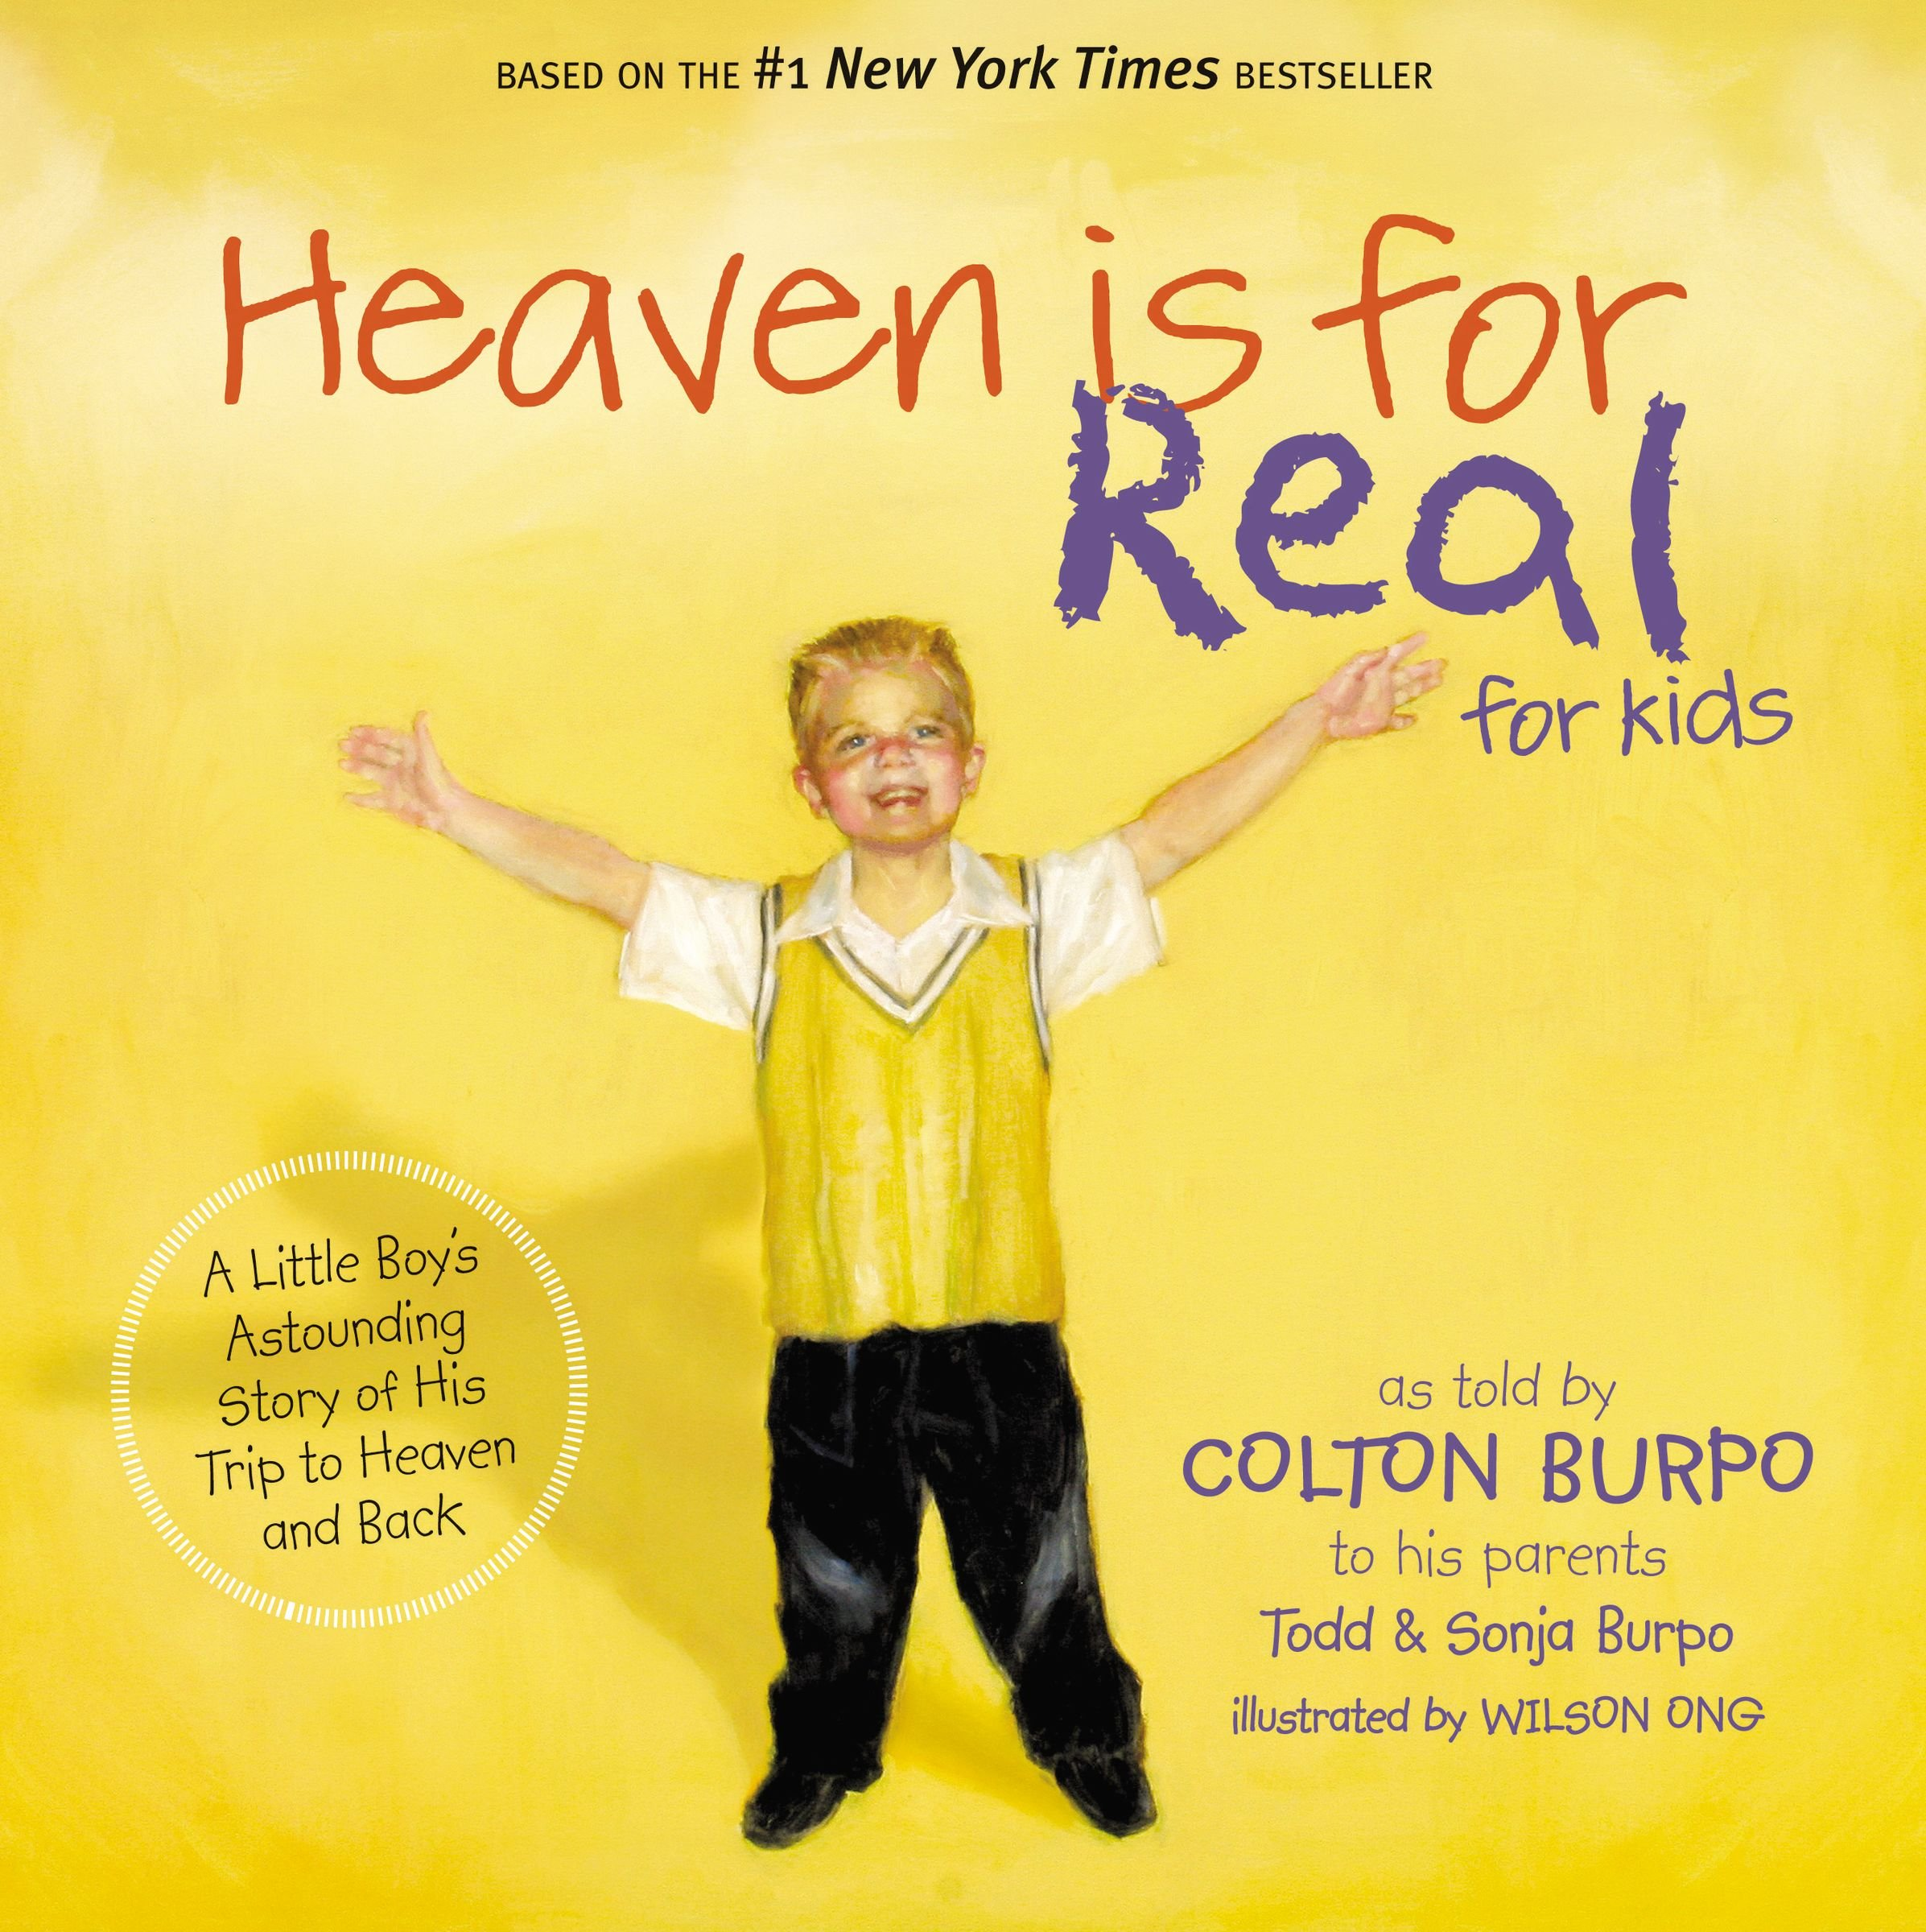 Download HEAVEN IS FOR REAL FOR KIDS (International Edition): A Little Boy's Astounding Story of His Trip to Heaven and Back PDF